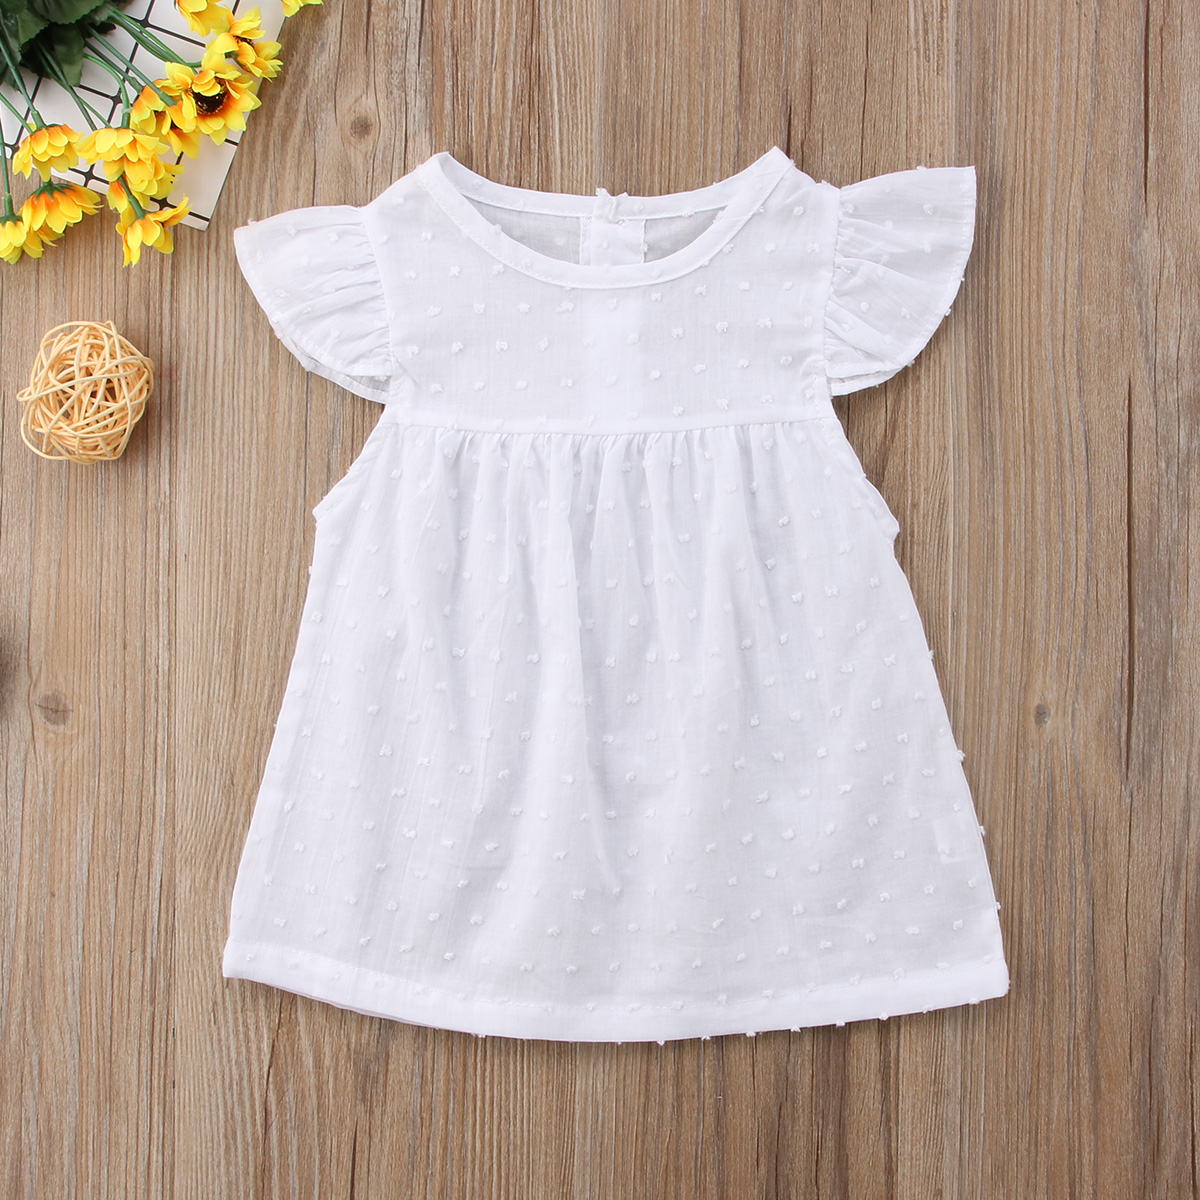 Newborn Infant Clothes Baby Girl White Tulle Princess Dress Toddler Short Sleeves Party Birthday Holiday Tutu Dresses